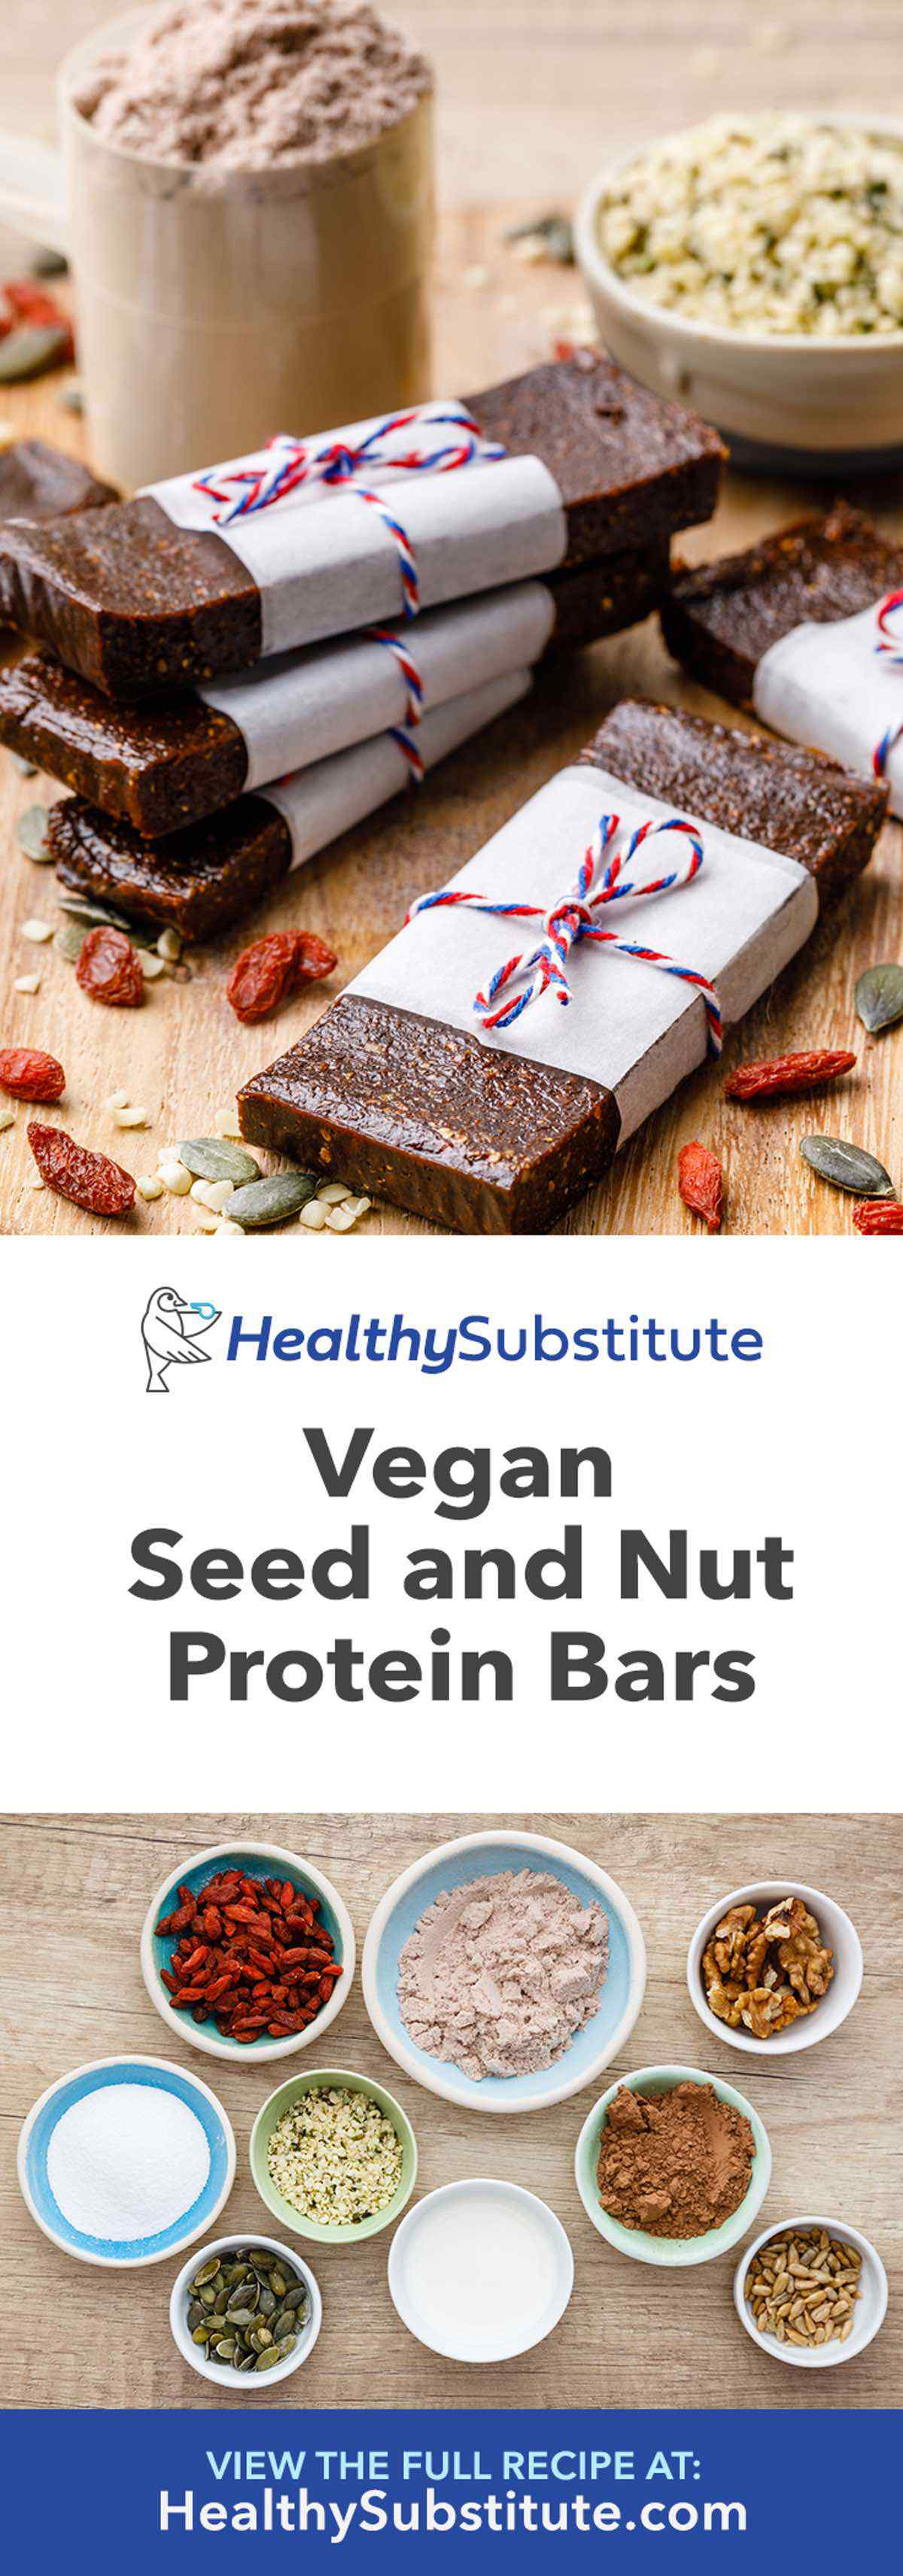 Seed and Nut Vegan Protein Bars